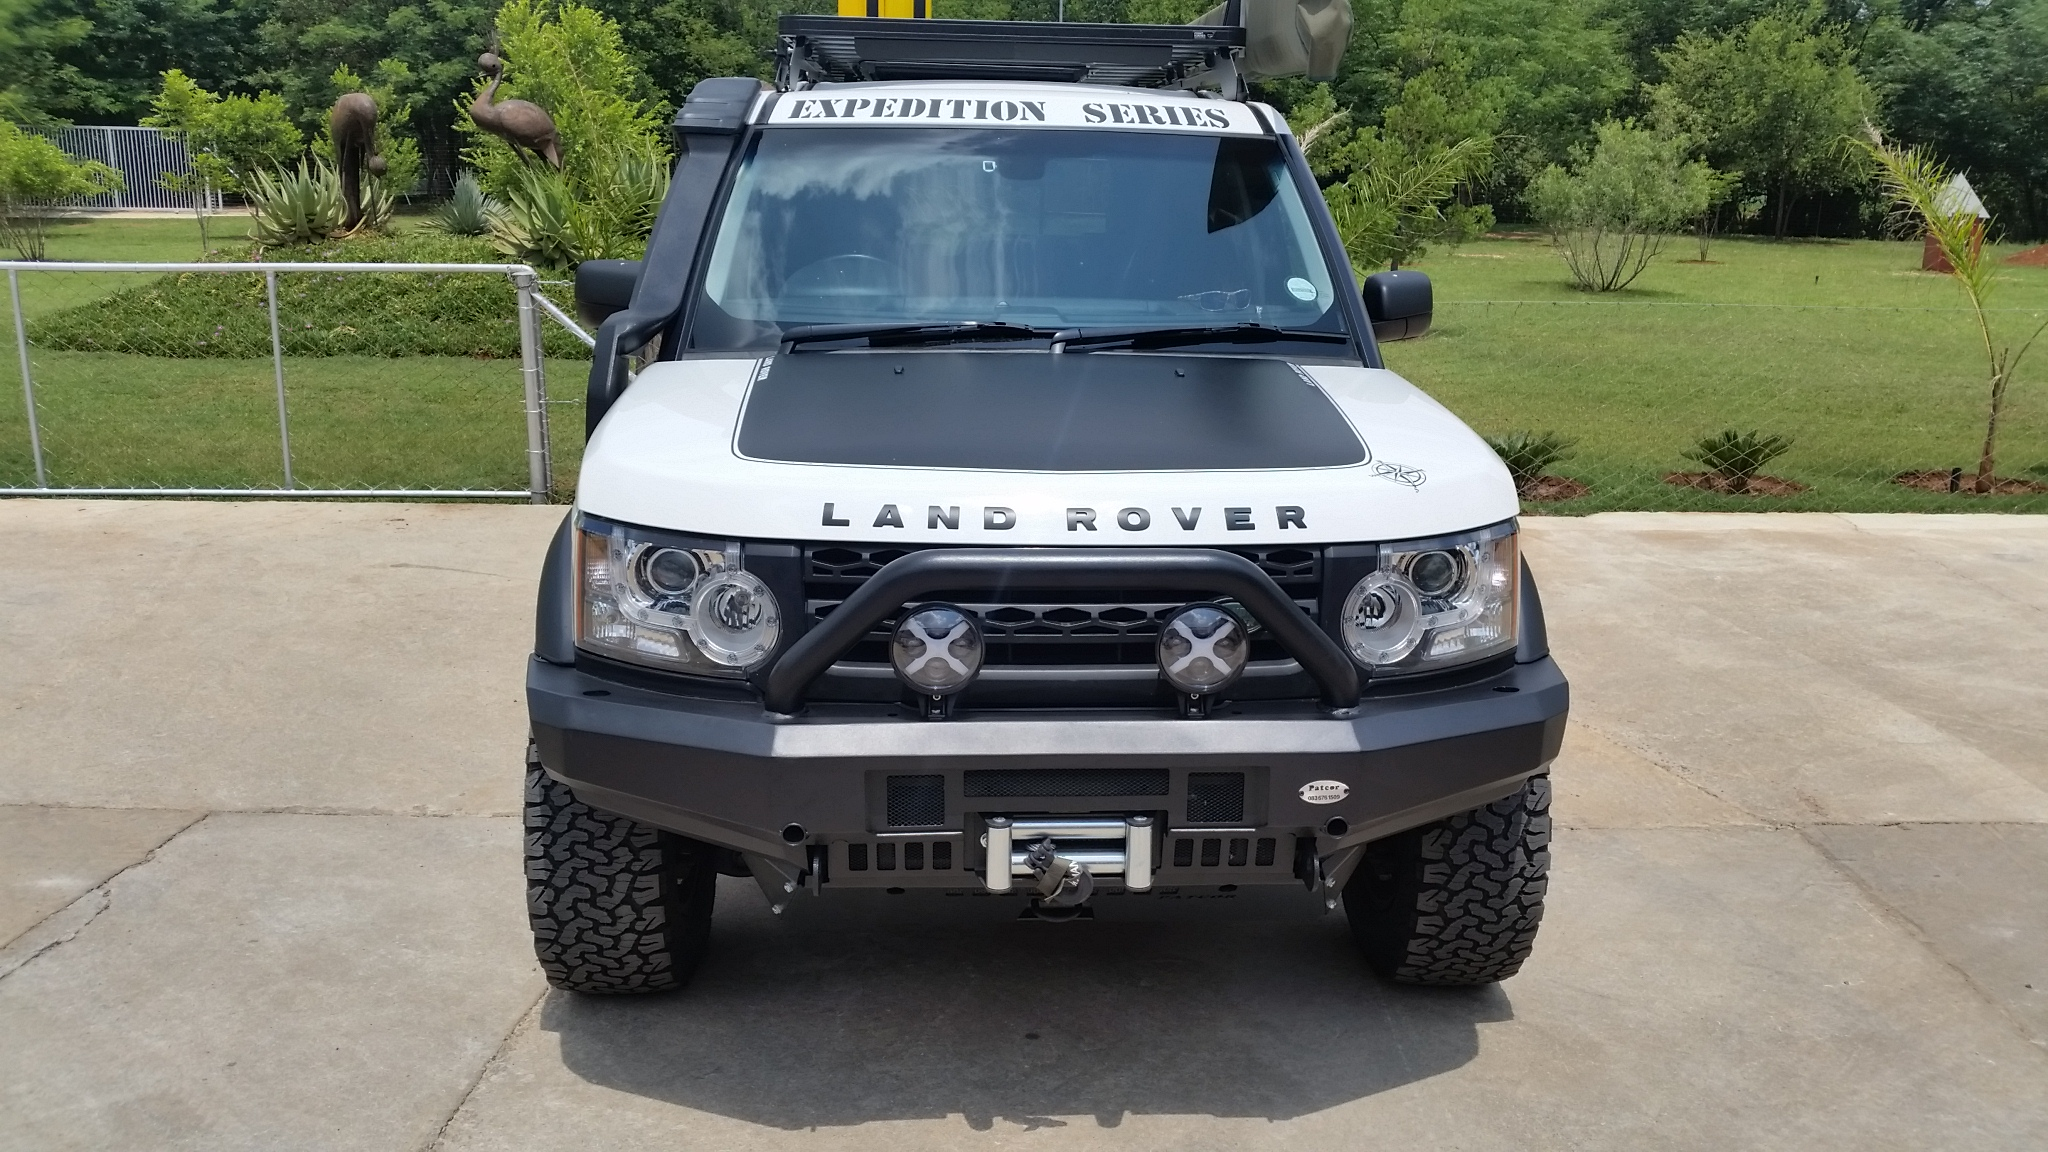 rover img product front ezzybid land com bumper discovery landrover